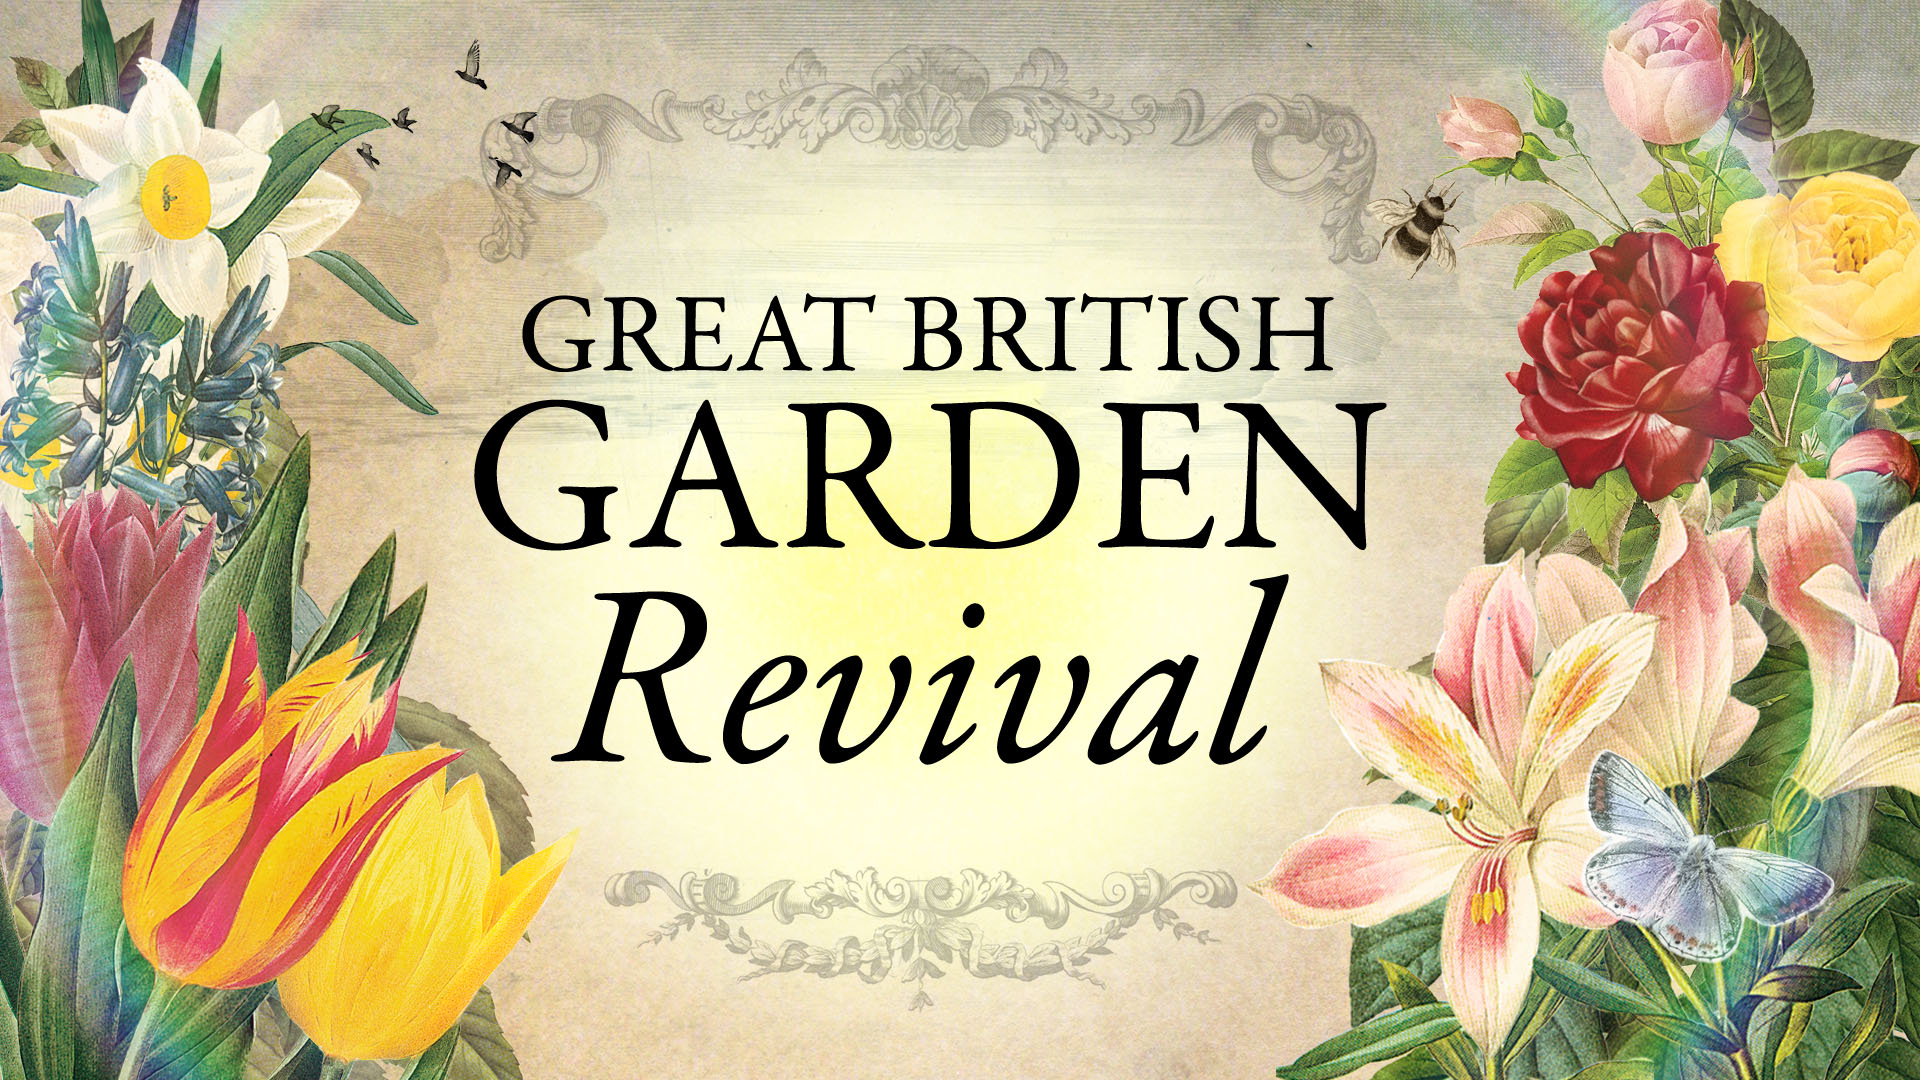 West Briton – Falmouth to feature on BBC2 Great British Garden Revival show tonight